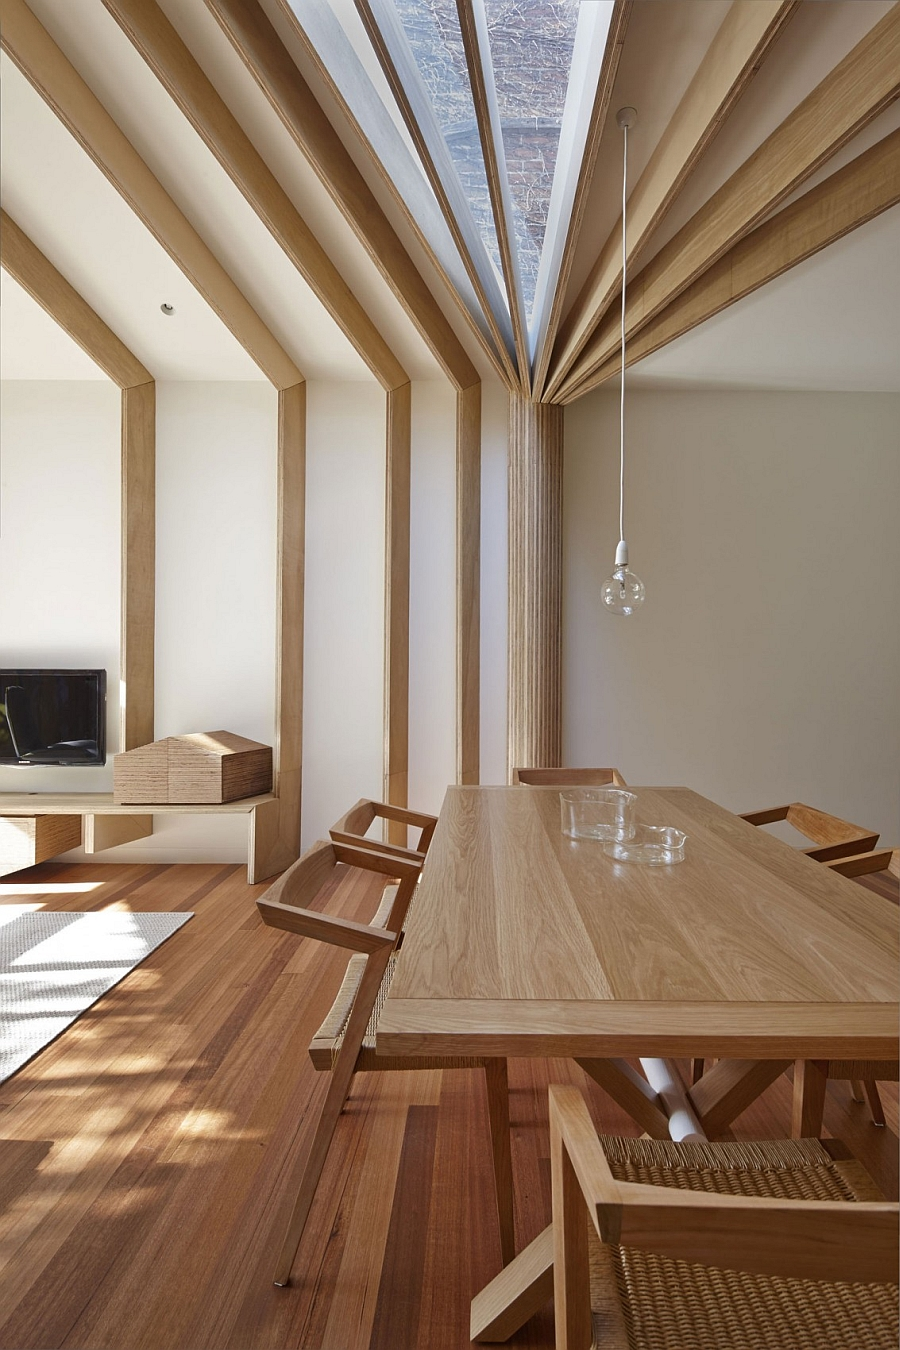 Wood gives the home a warm, contemporary appeal